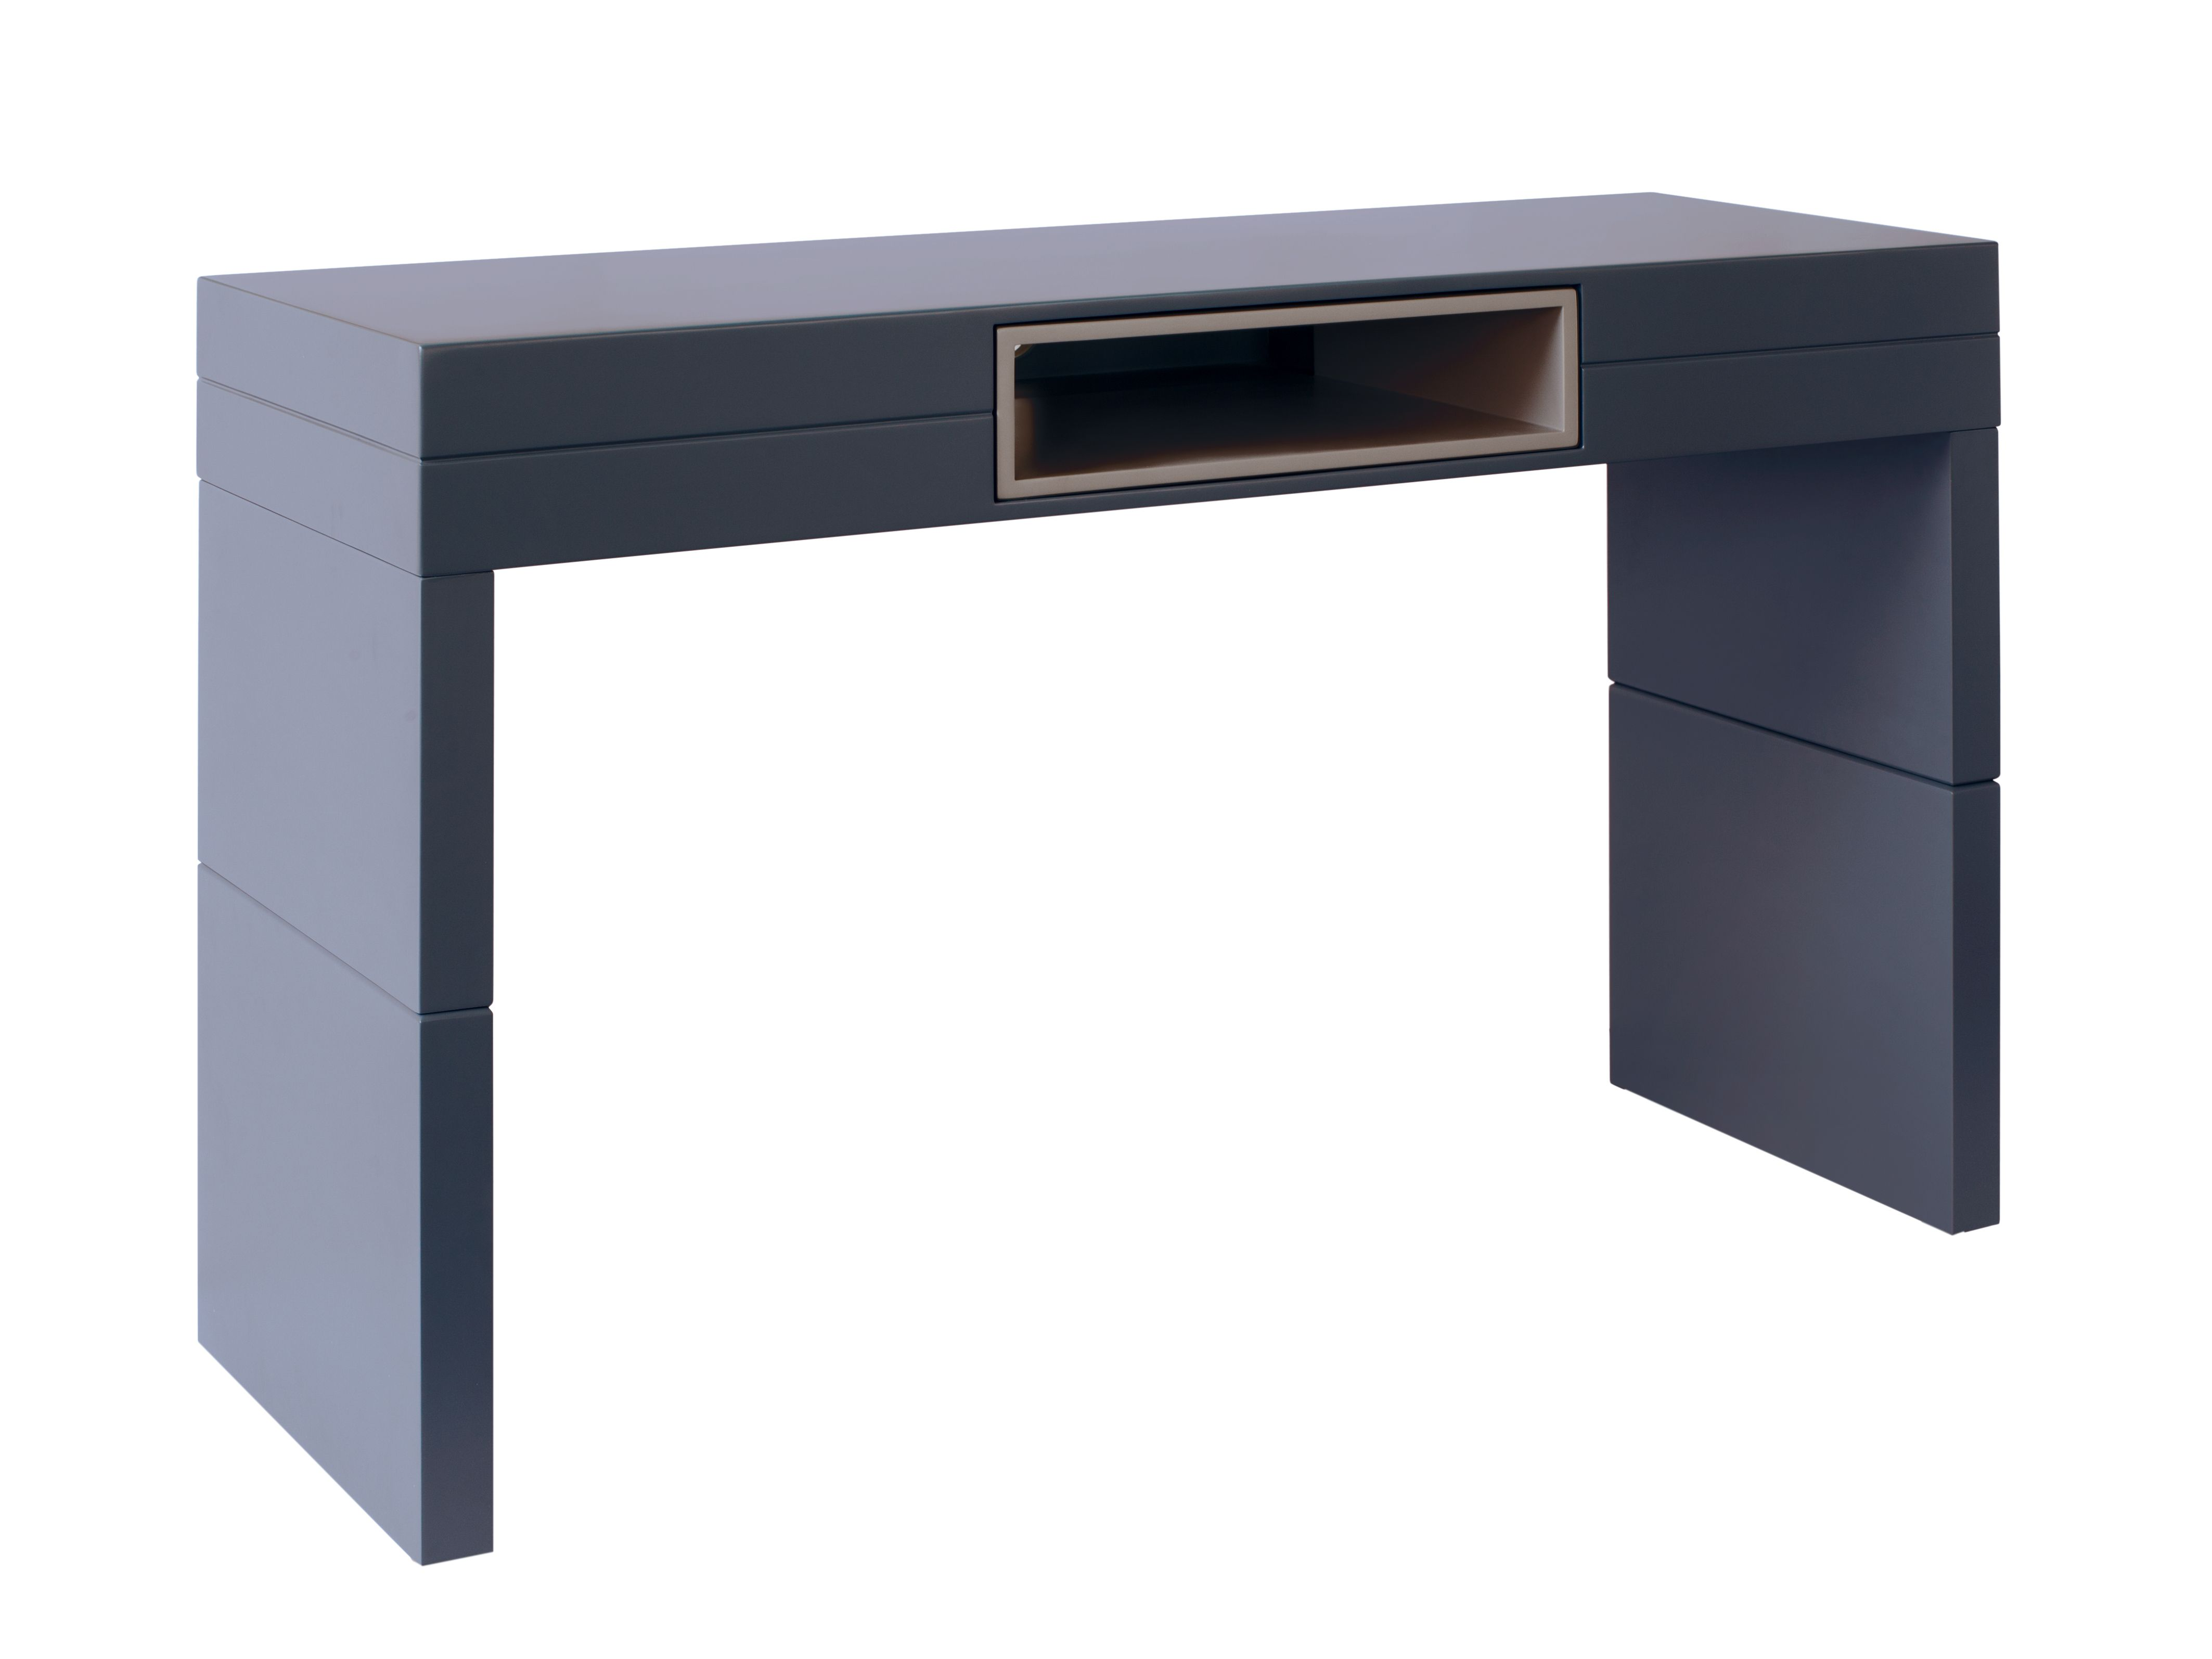 Surprising High Console Table Gmtry Best Dining Table And Chair Ideas Images Gmtryco